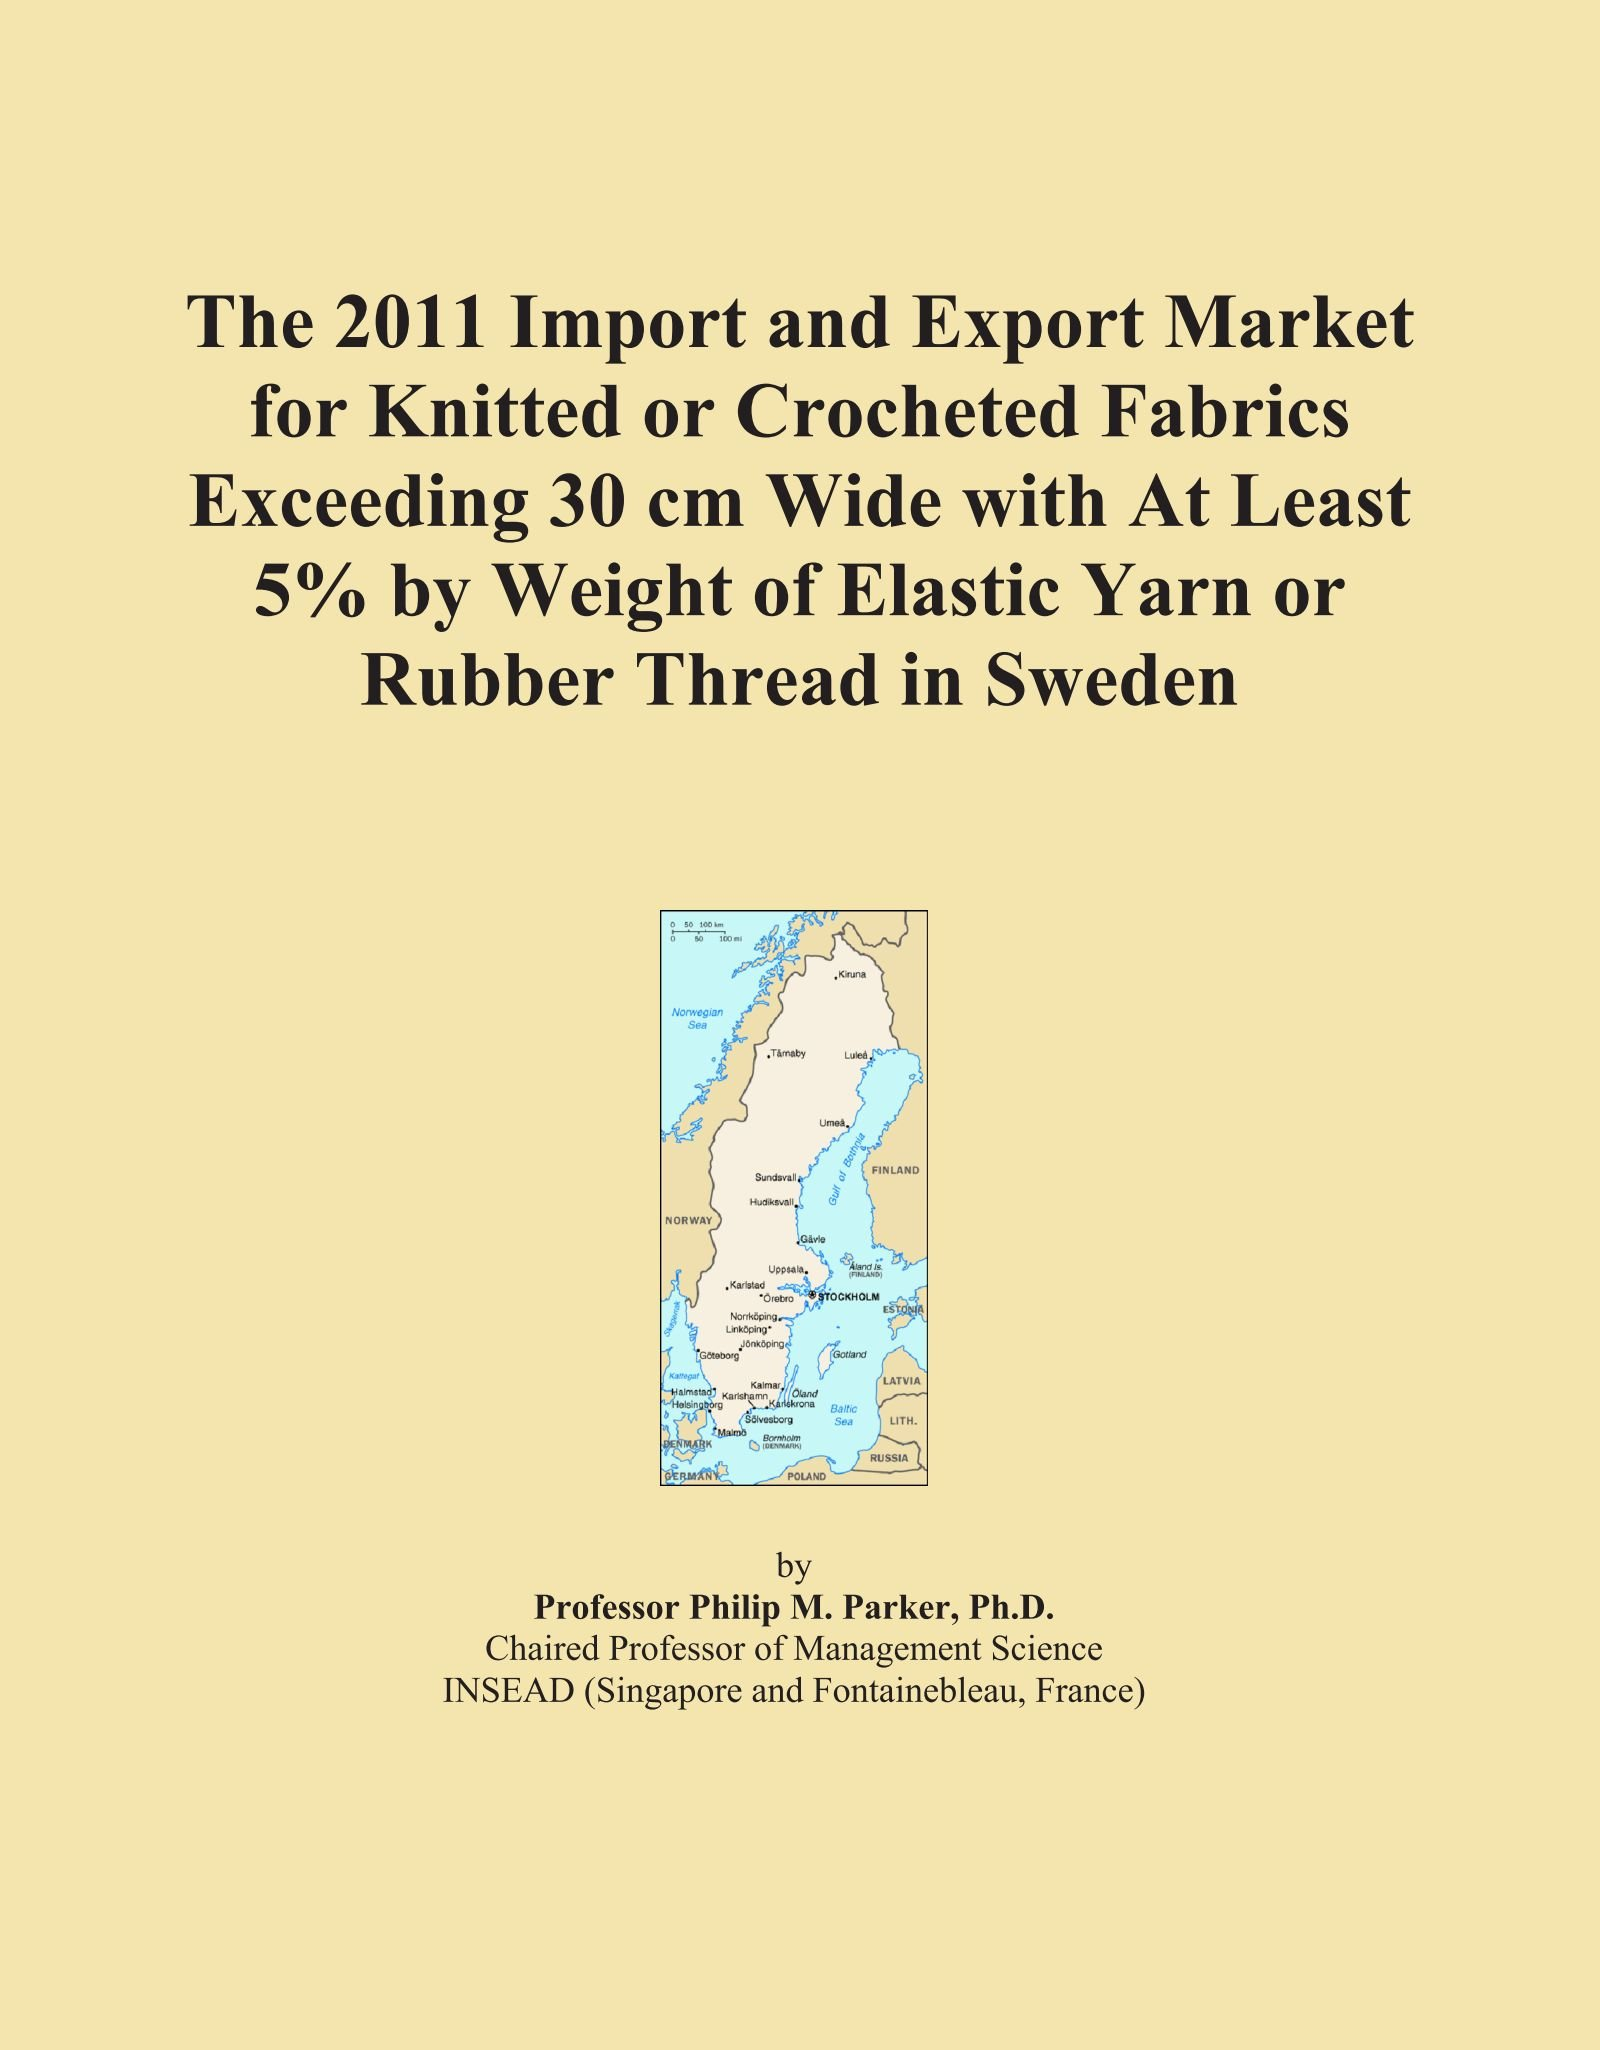 The 2011 Import and Export Market for Knitted or Crocheted Fabrics Exceeding 30 cm Wide with At Least 5% by Weight of Elastic Yarn or Rubber Thread in Sweden ebook